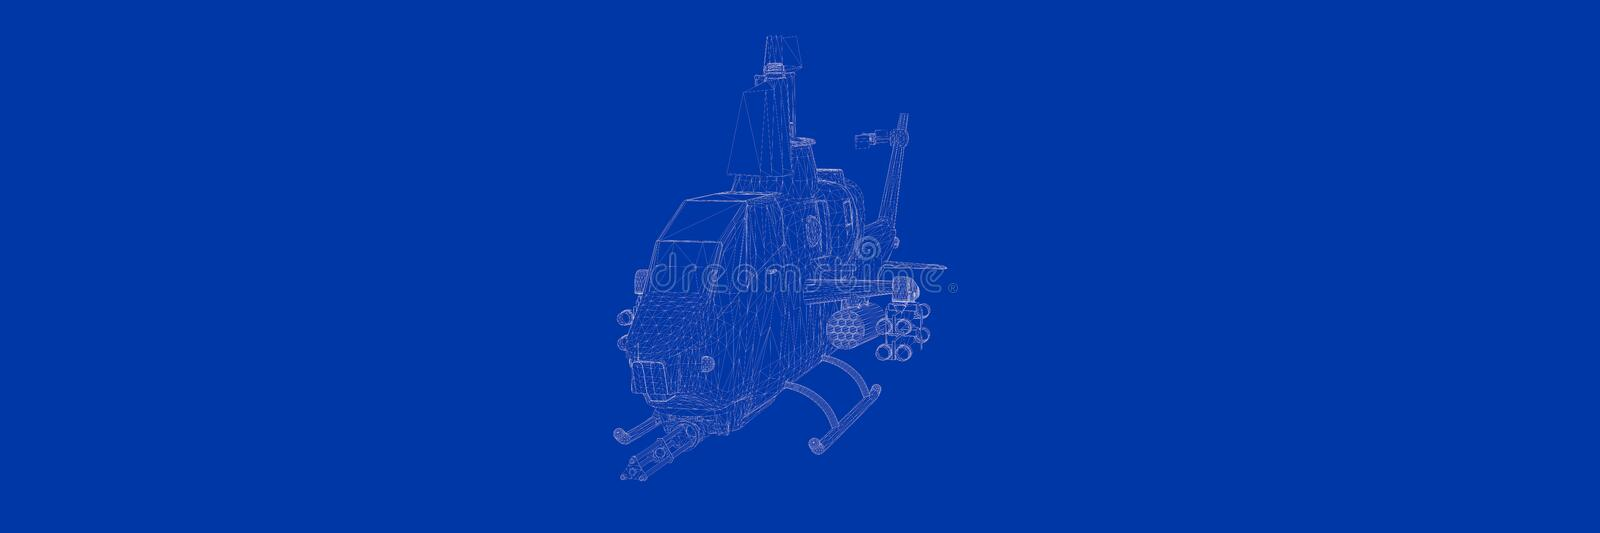 3d rendering of a helicopter on a blue background blueprint stock download 3d rendering of a helicopter on a blue background blueprint stock illustration illustration of malvernweather Gallery